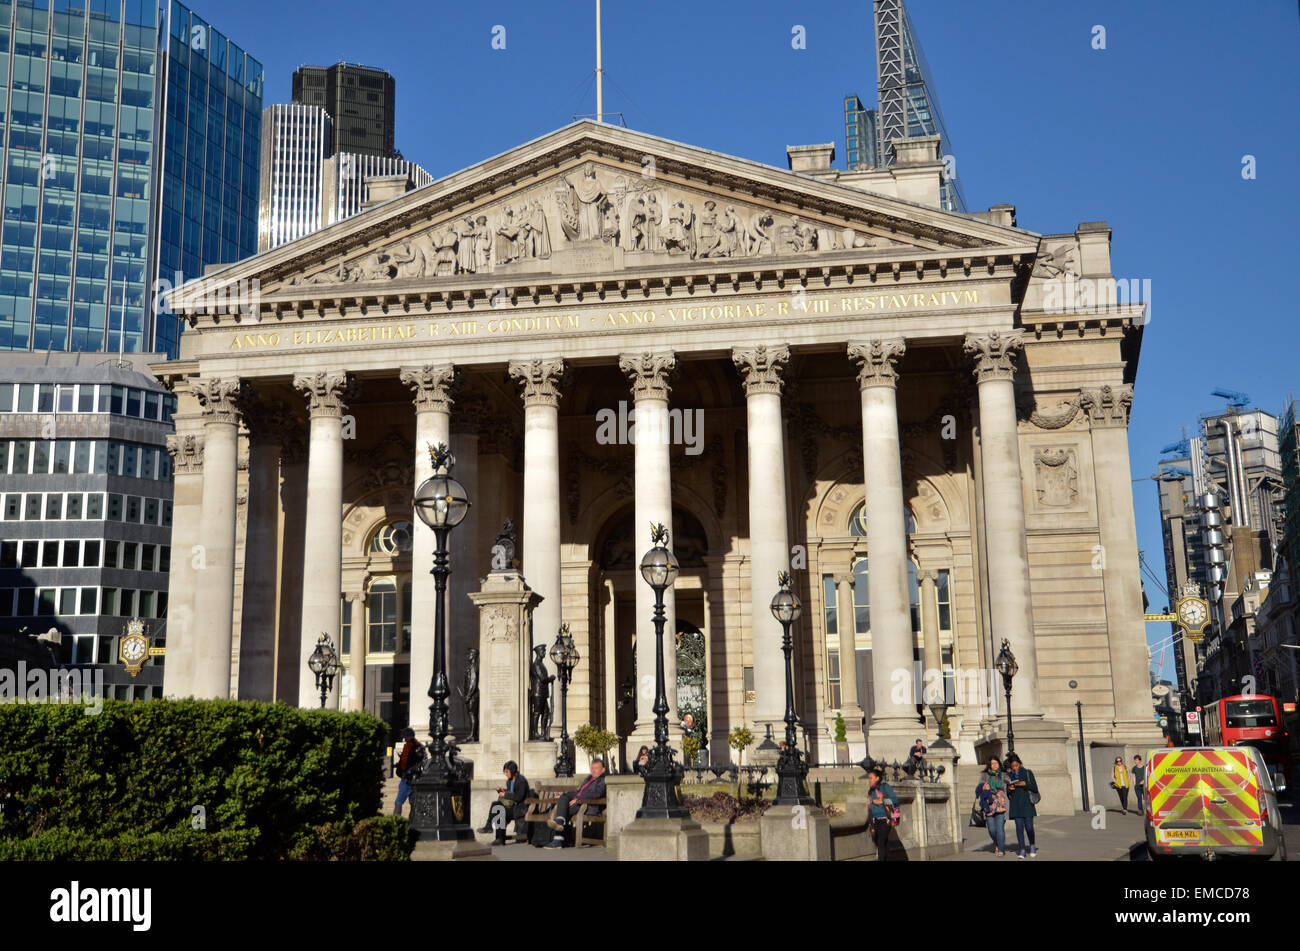 The Royal Exchange building in the City of London - Stock Image